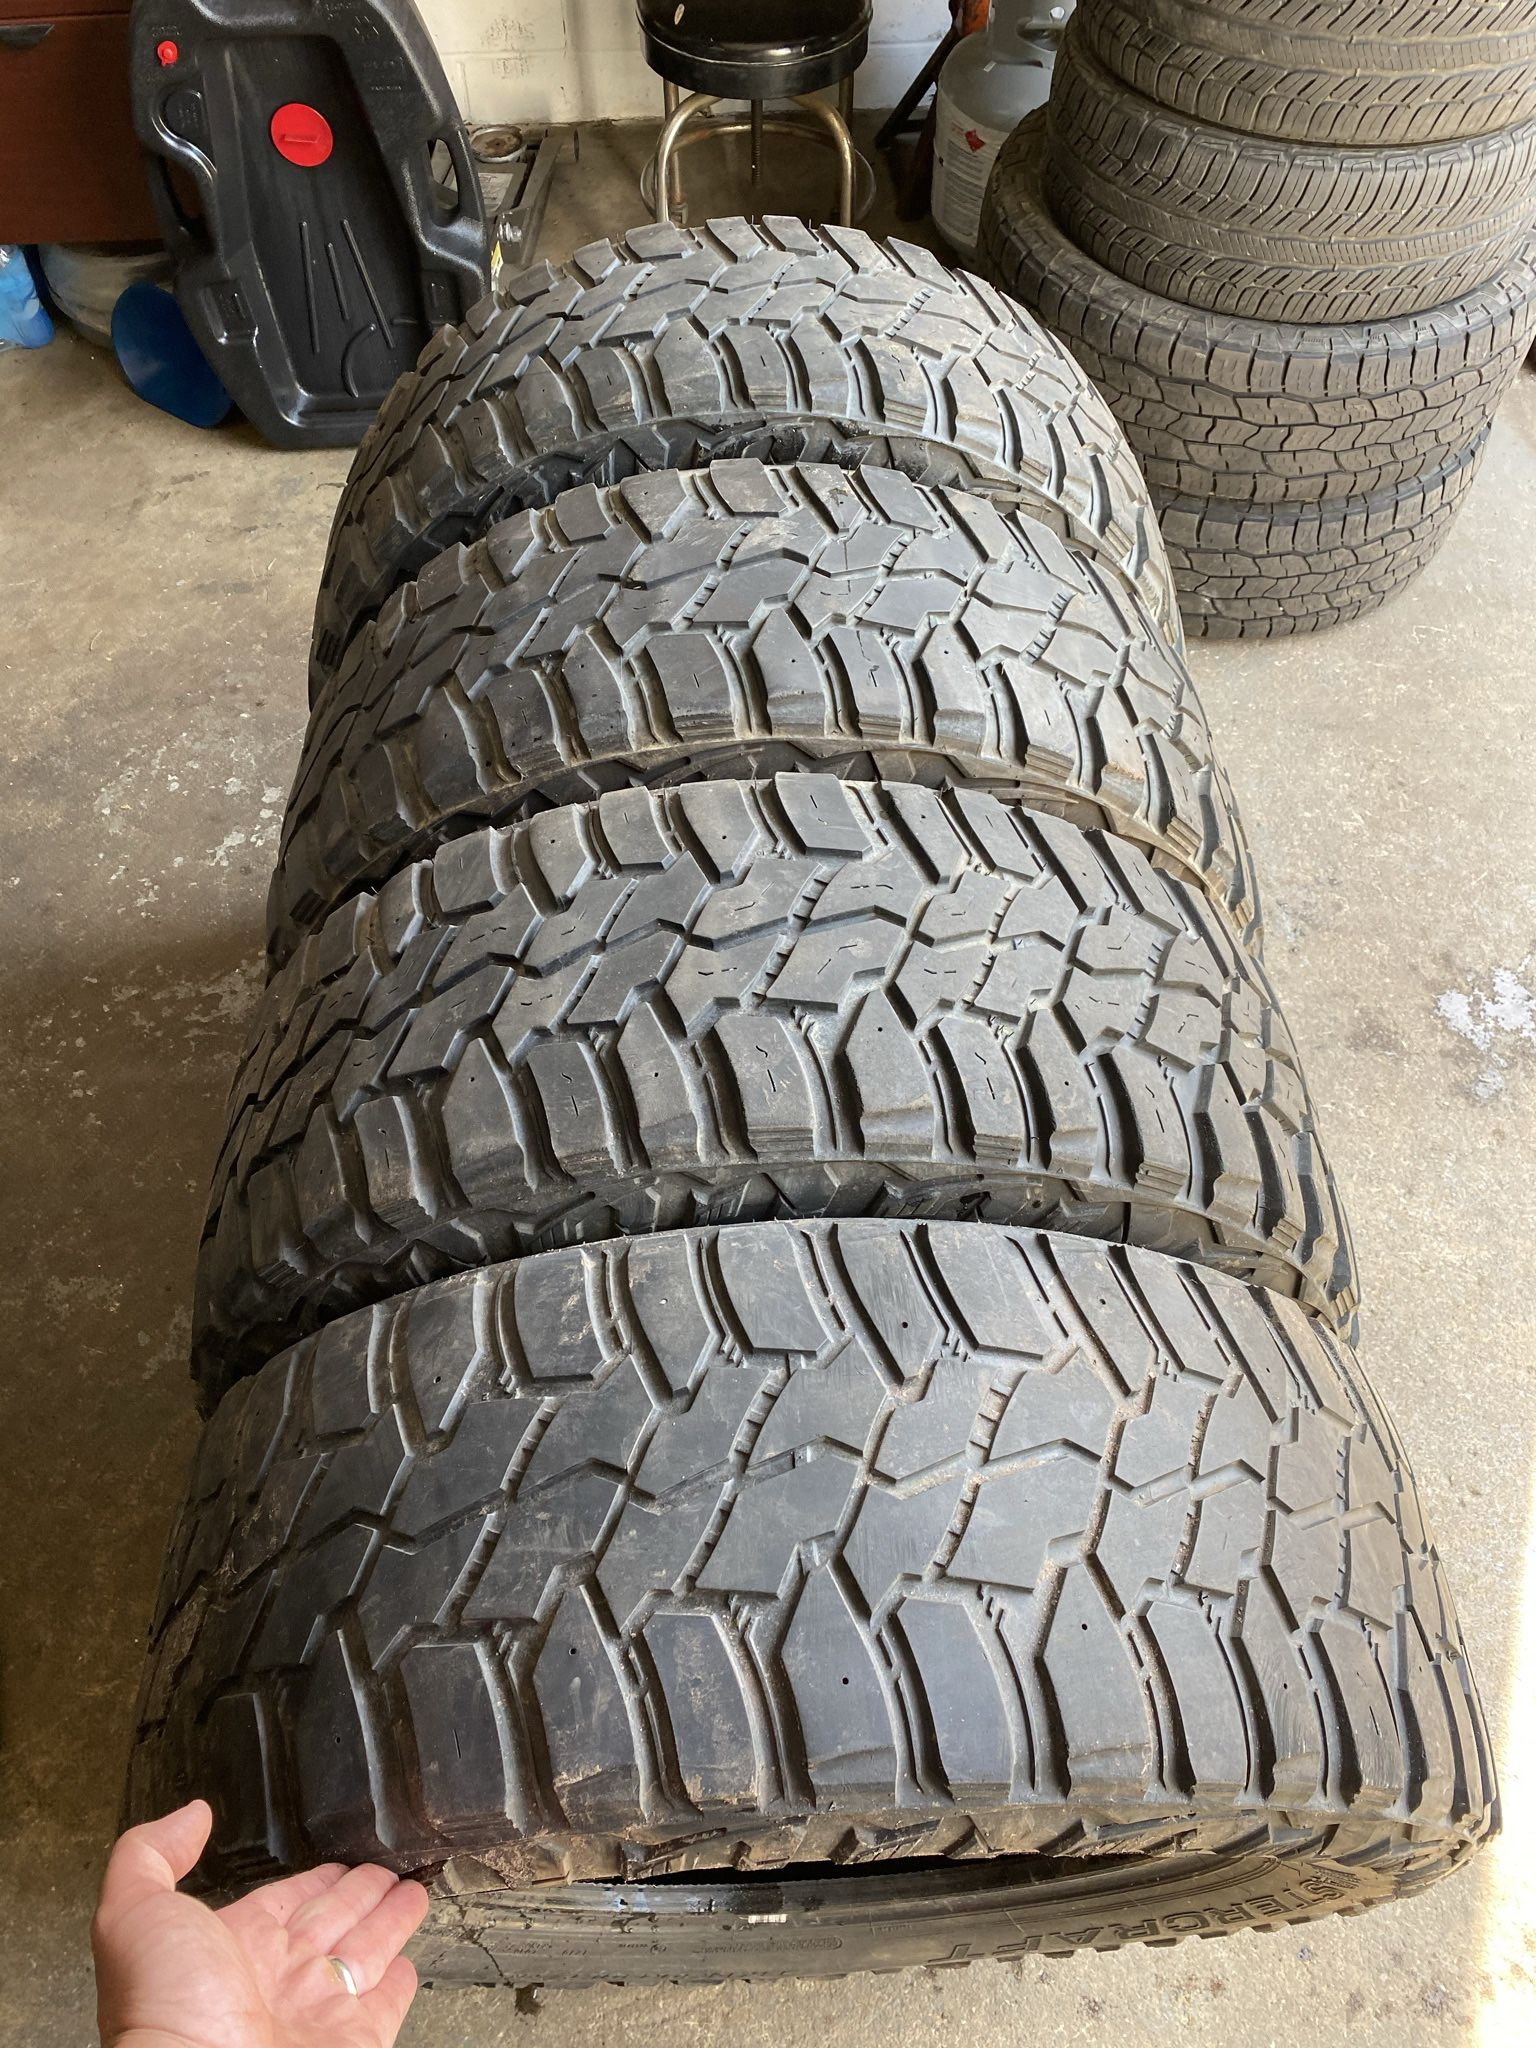 Photo 4 35x12.50x20 Mastercraft Courser MXT Tires. Cooper makes Mastercraft, these are similar to Cooper Discoverer STT Pro lineup. Load range E $450 fo